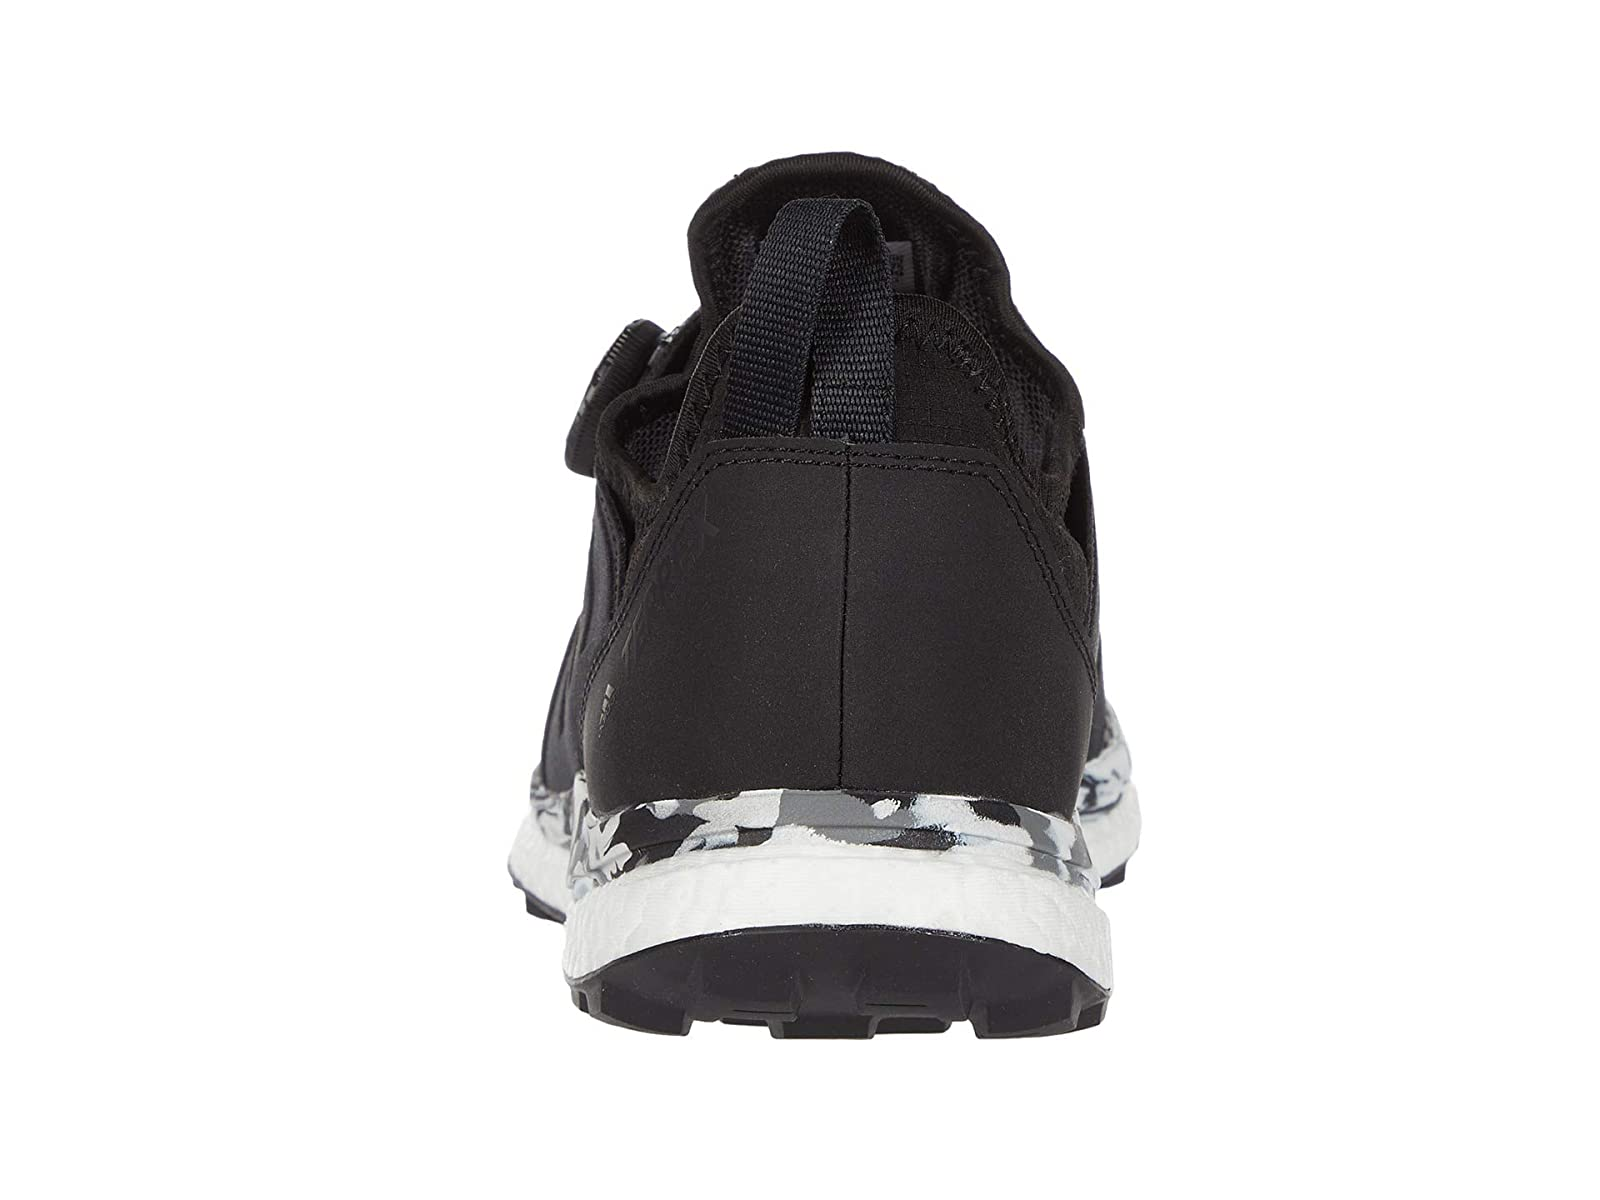 Man-039-s-Sneakers-amp-Athletic-Shoes-adidas-Outdoor-Terrex-Agravic-BOA thumbnail 6